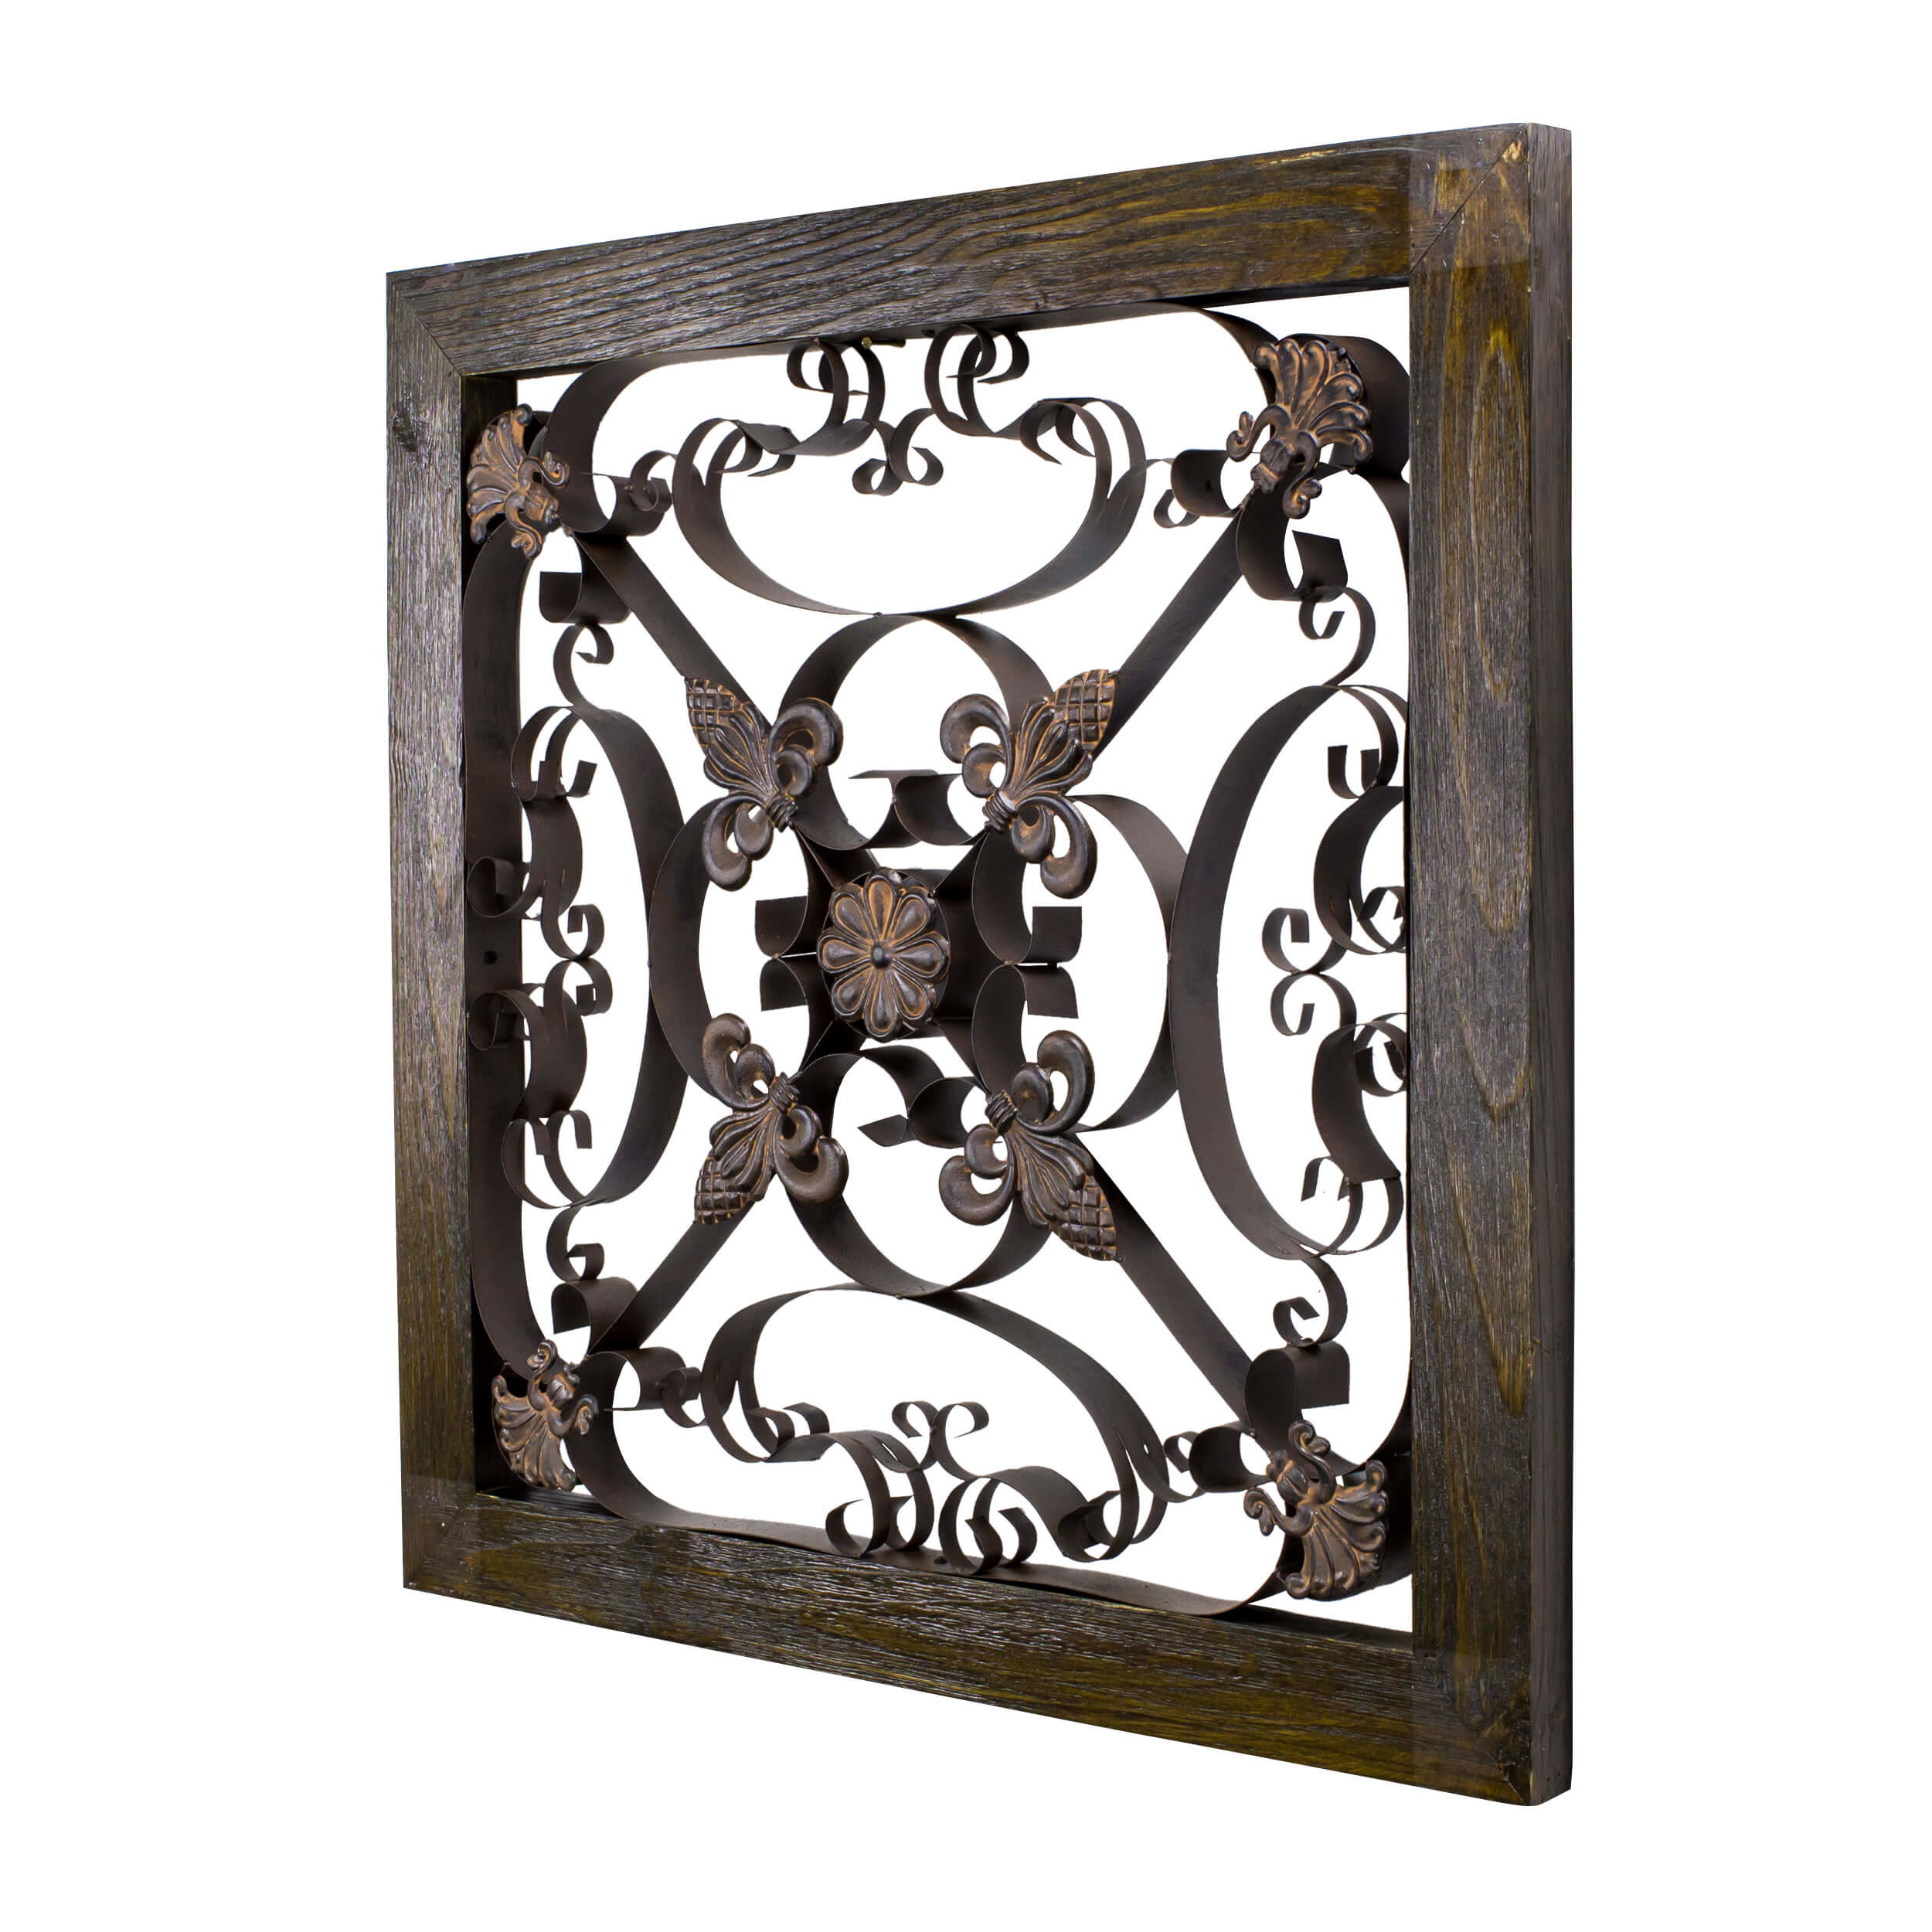 Best ideas about Wrought Iron Wall Art . Save or Pin BayAccents Square Framed Wrought Iron Wall Art Now.